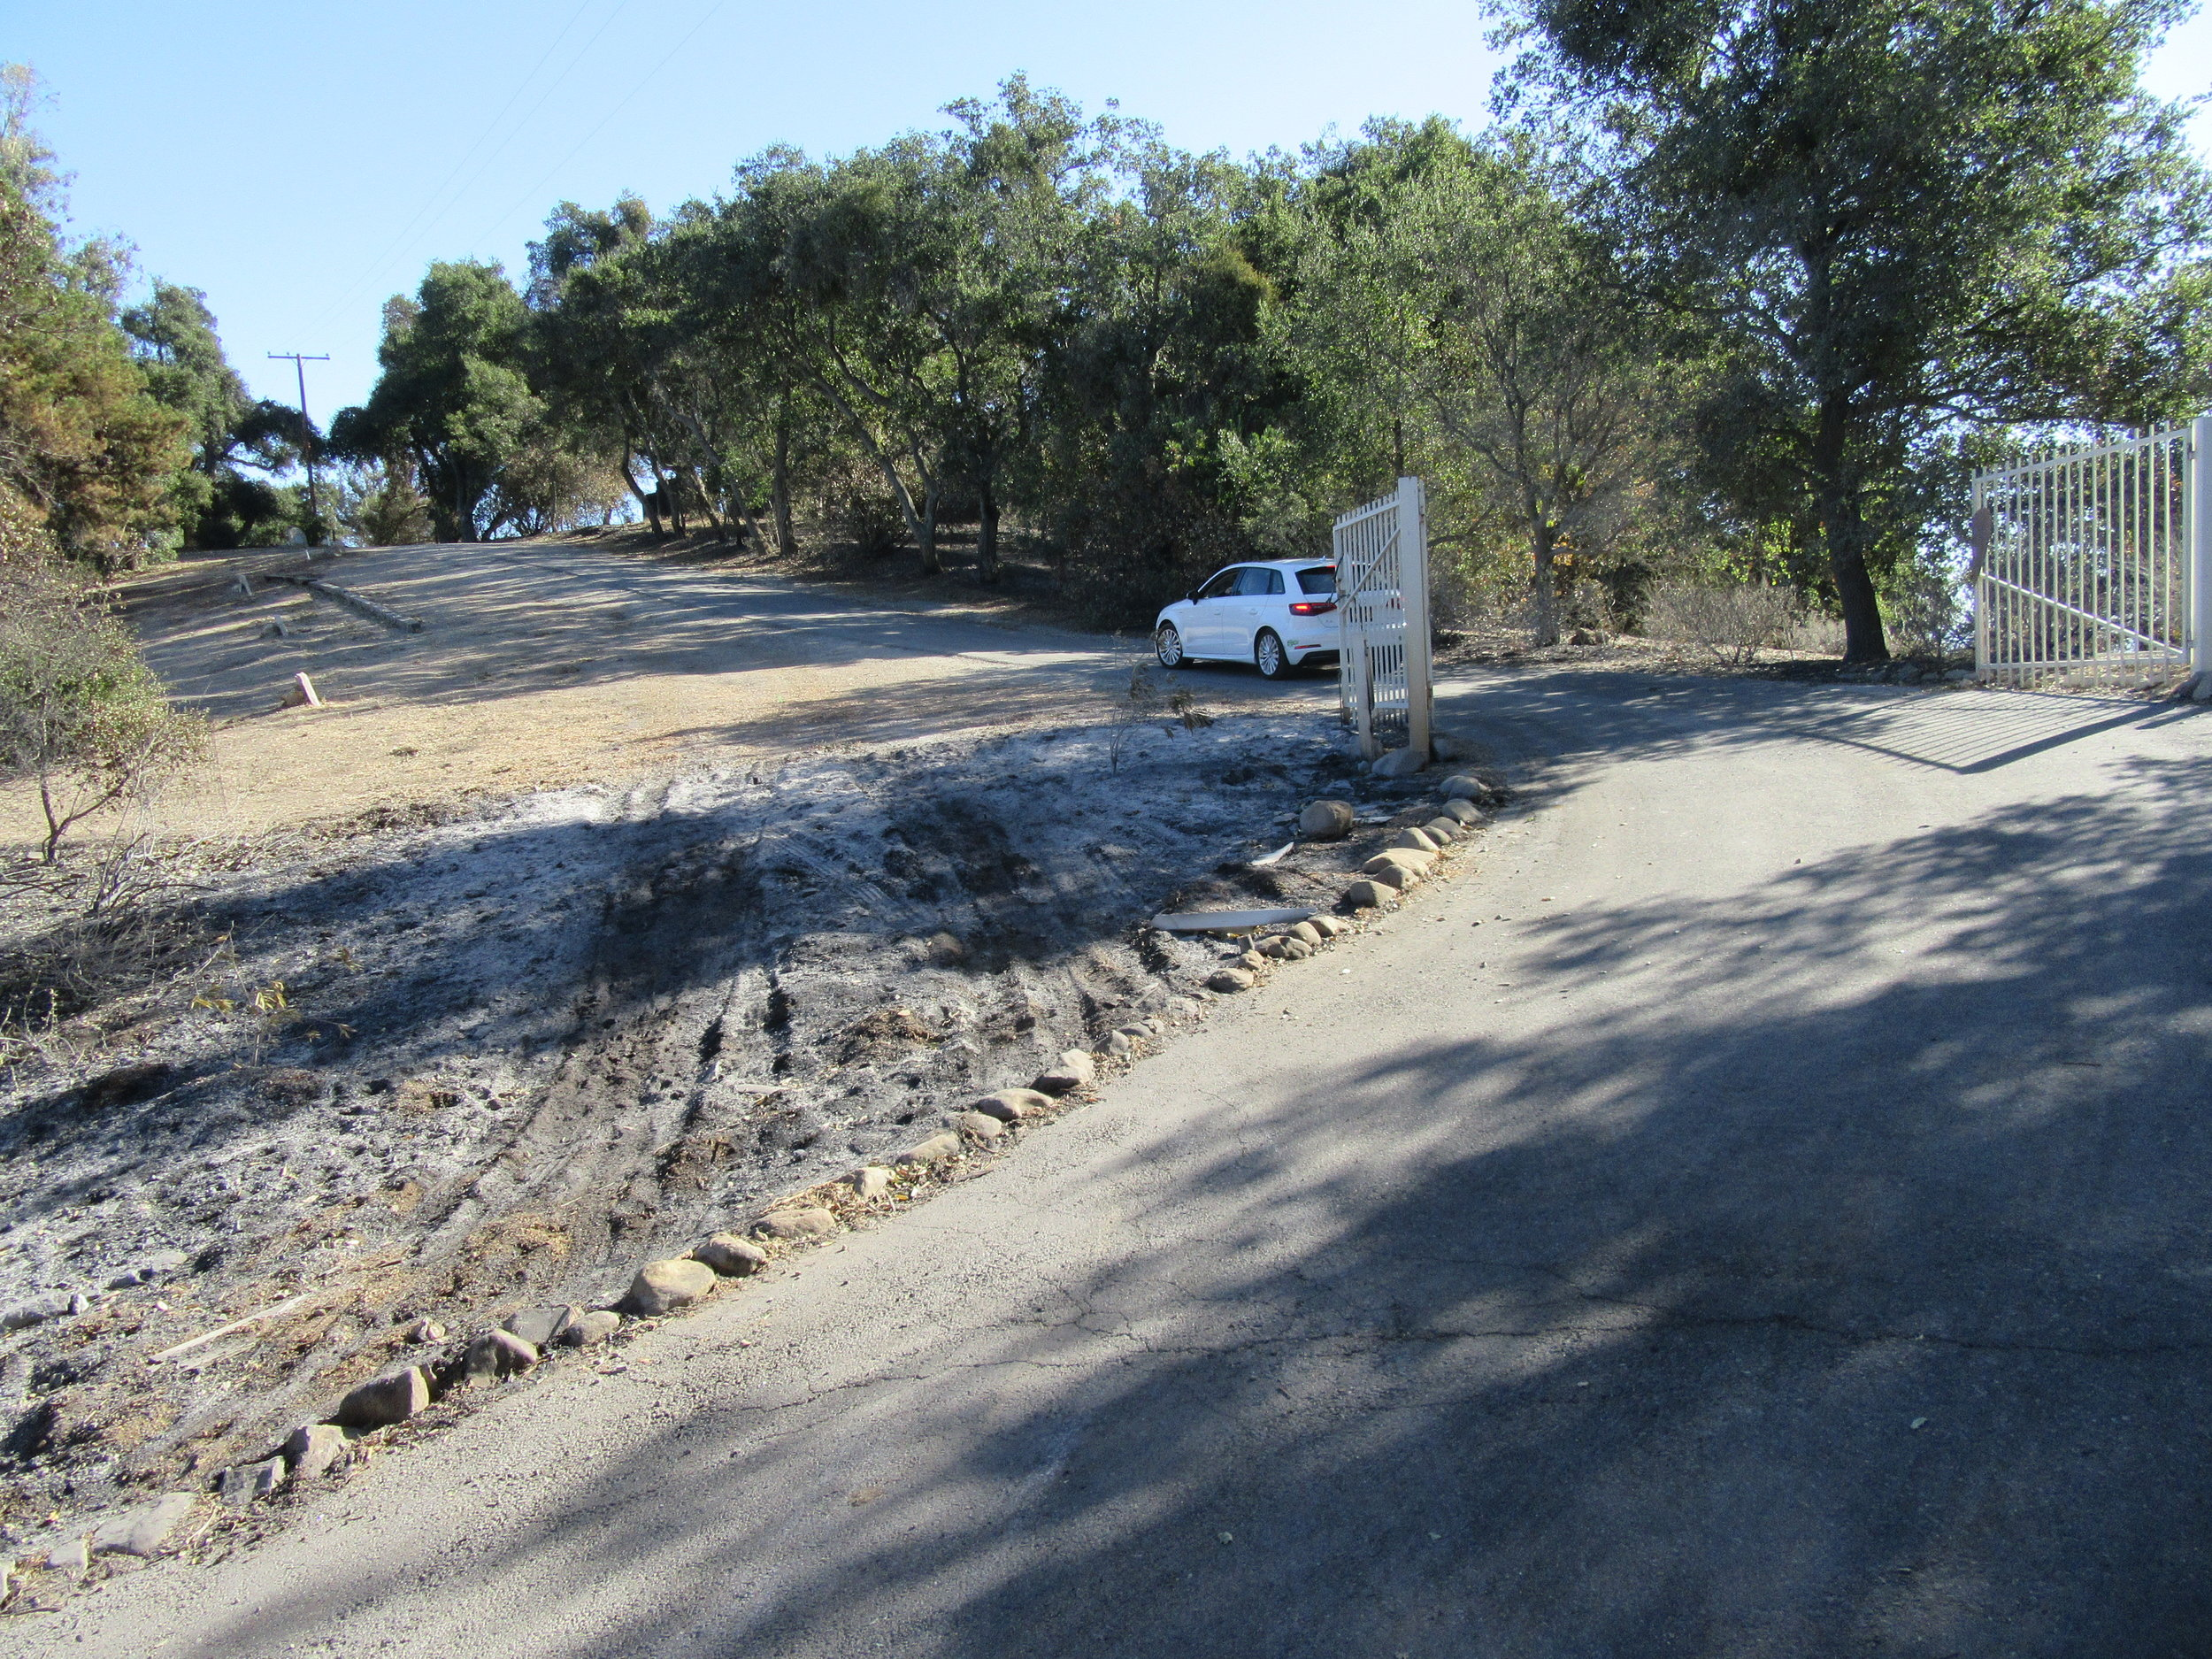 THE THOMAS FIRE left an opening - you can see the tire tracks on the left -where pedestrians and vehicles could bypass the closed gate and enter Meher Mount. (Photo: Sam Ervin, December 21, 2017)